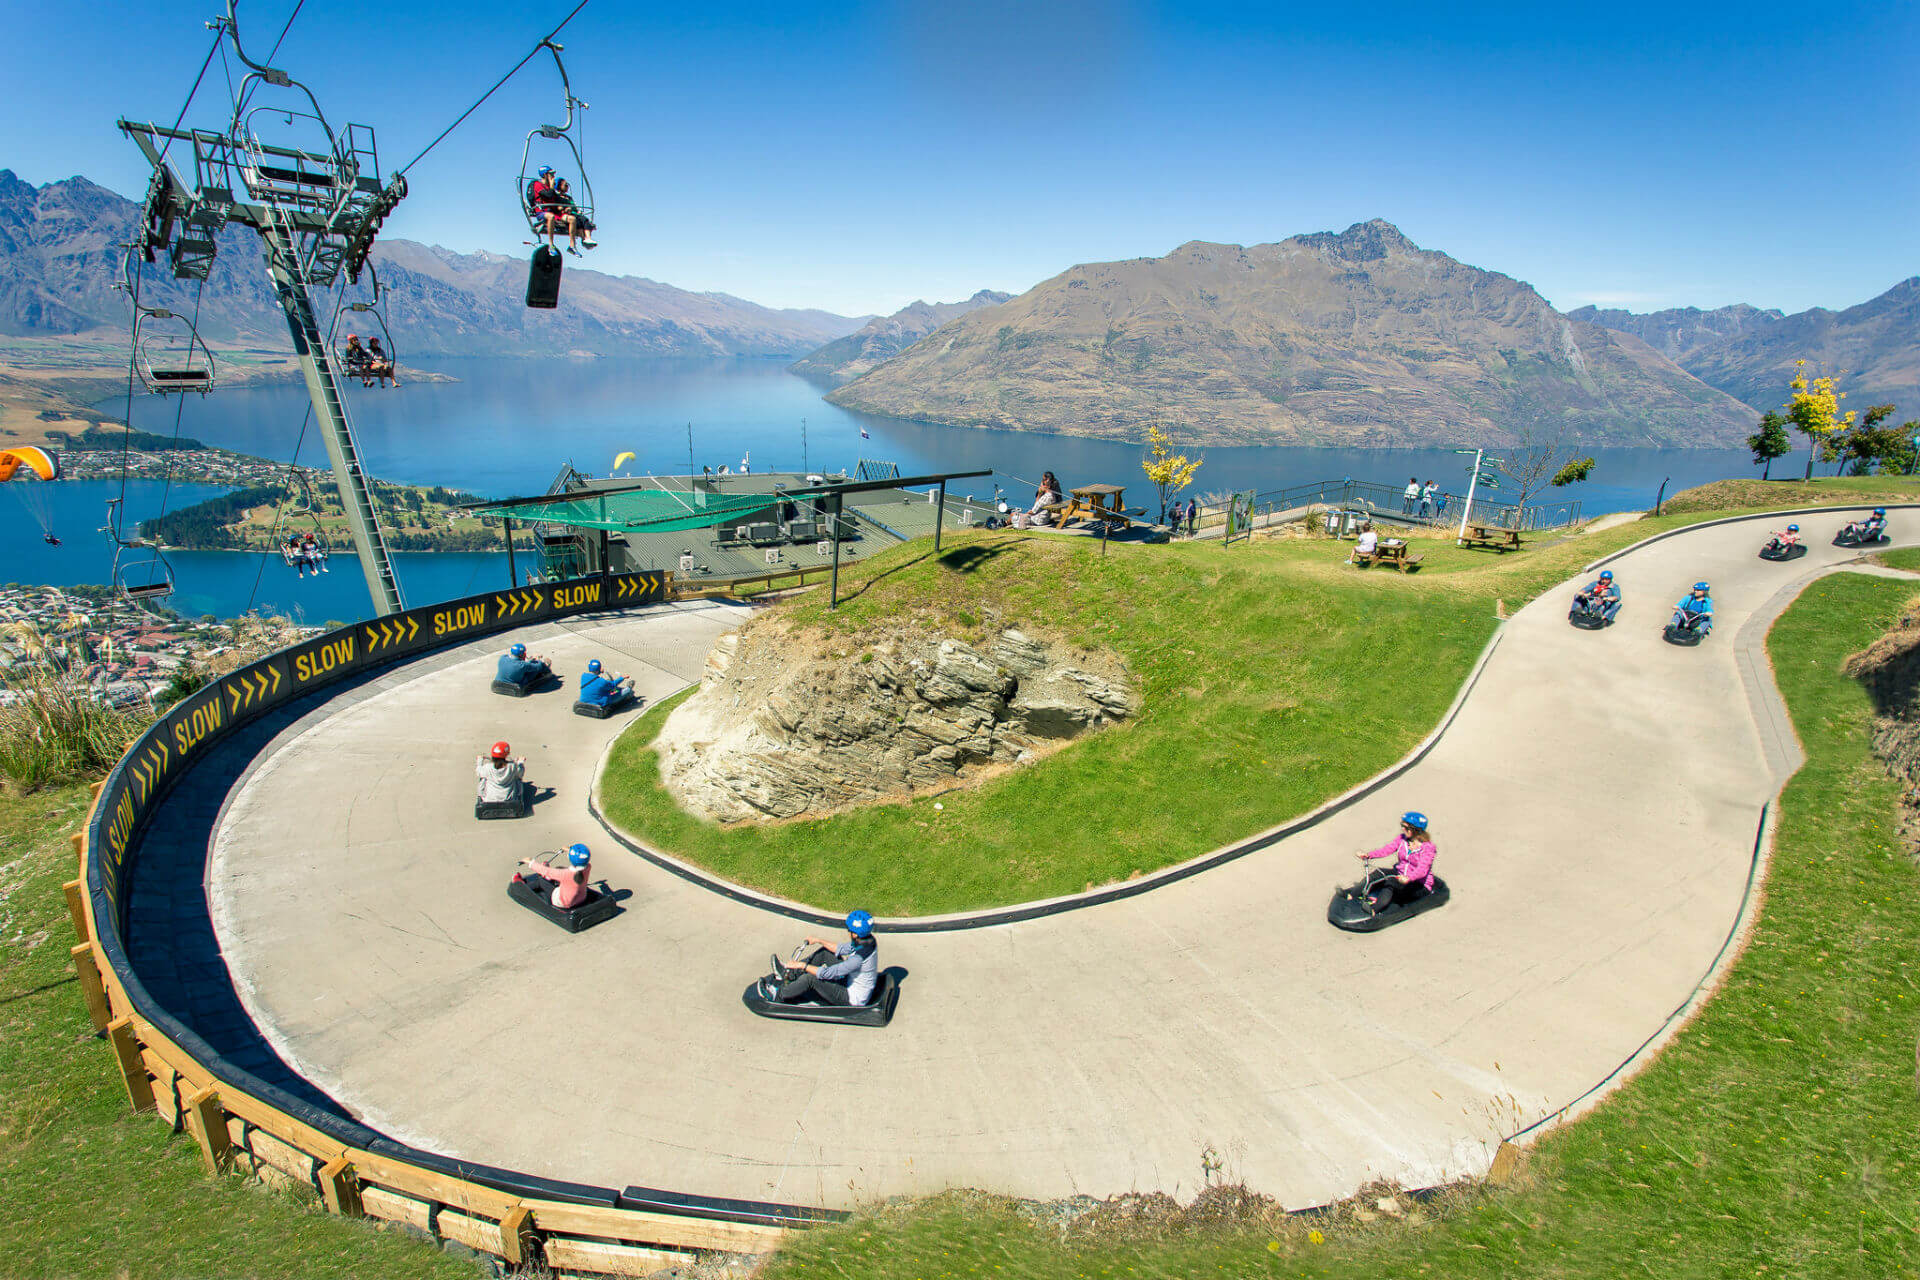 Skyline Queenstown Luge Track and Chairlift.